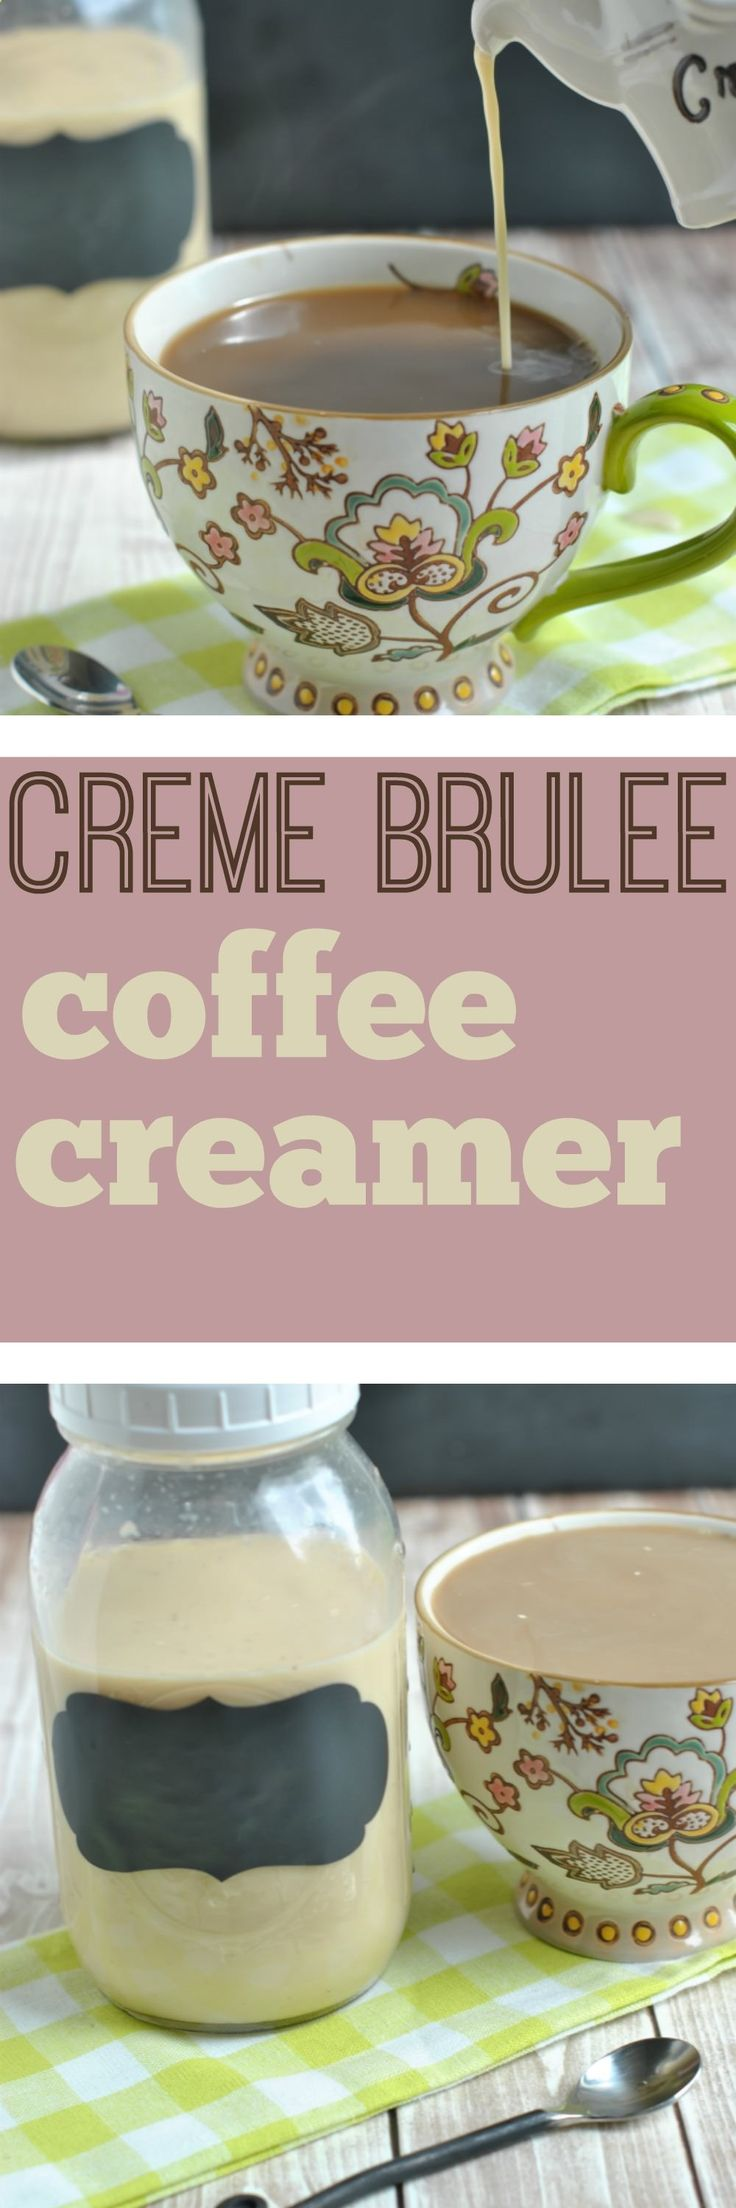 Another delicious homemade coffee creamer for you all to enjoy. The rich taste of Creme Brulee in this homemade coffee creamer is perfect paired with any fall dessert.